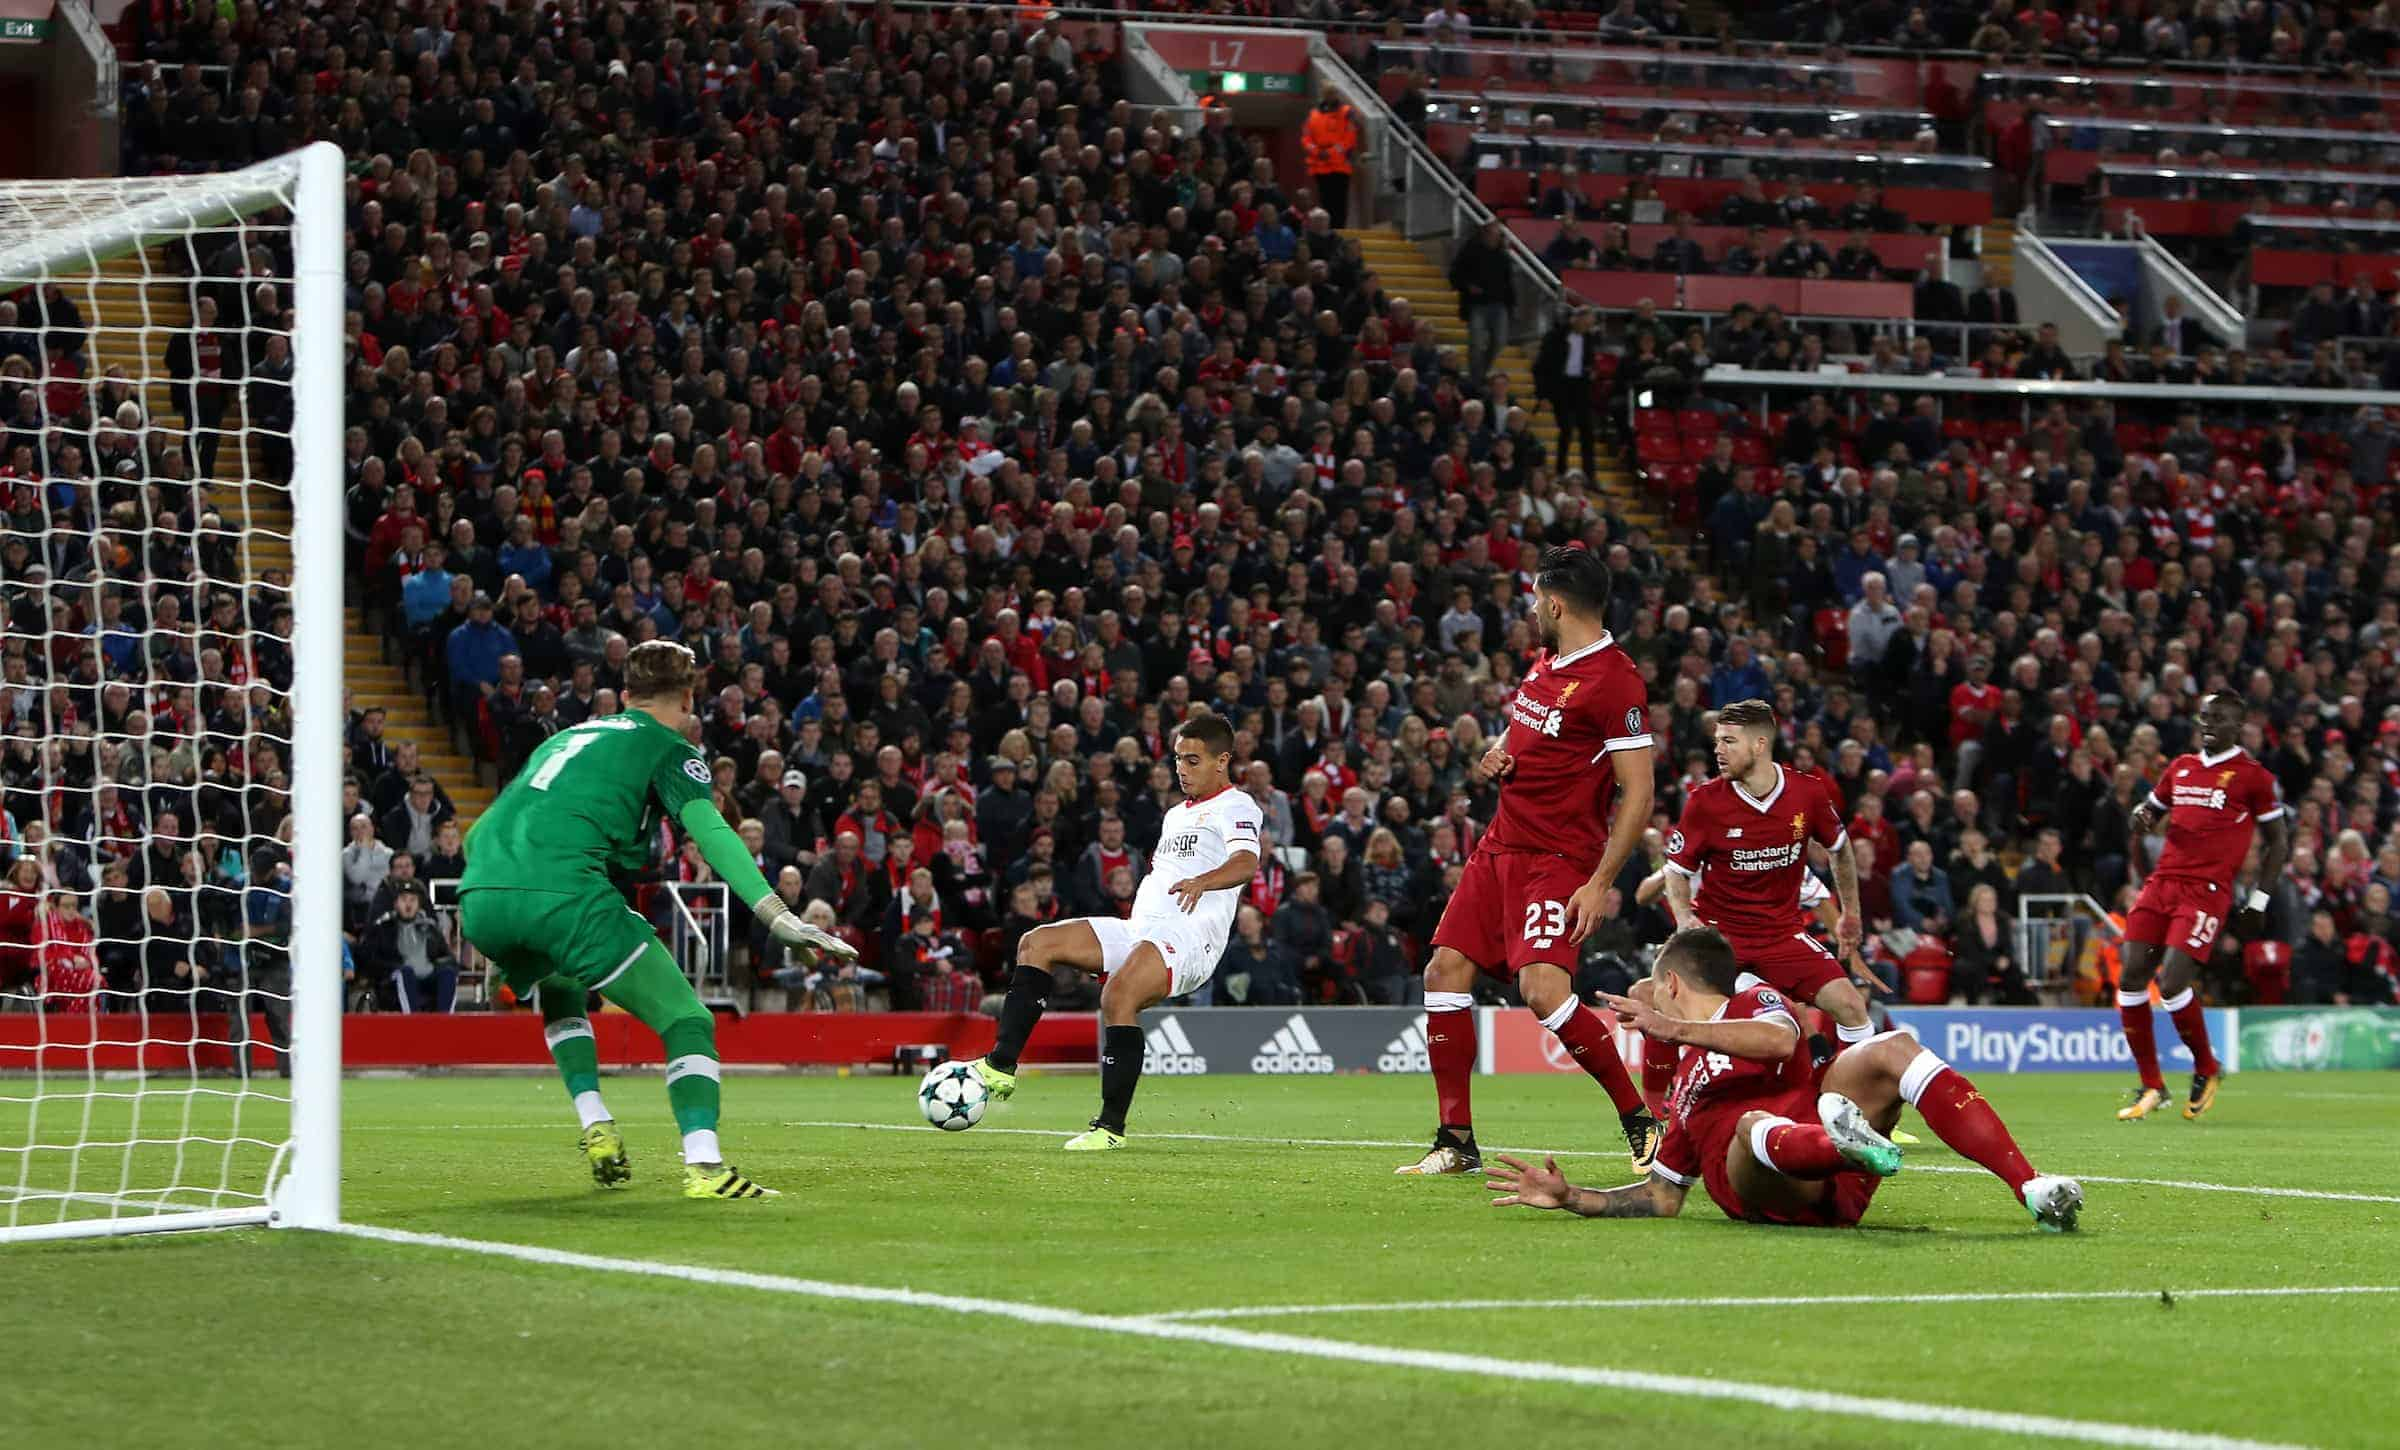 Sevilla's Wissam Ben Yedder (centre) scores his side's first goal of the game